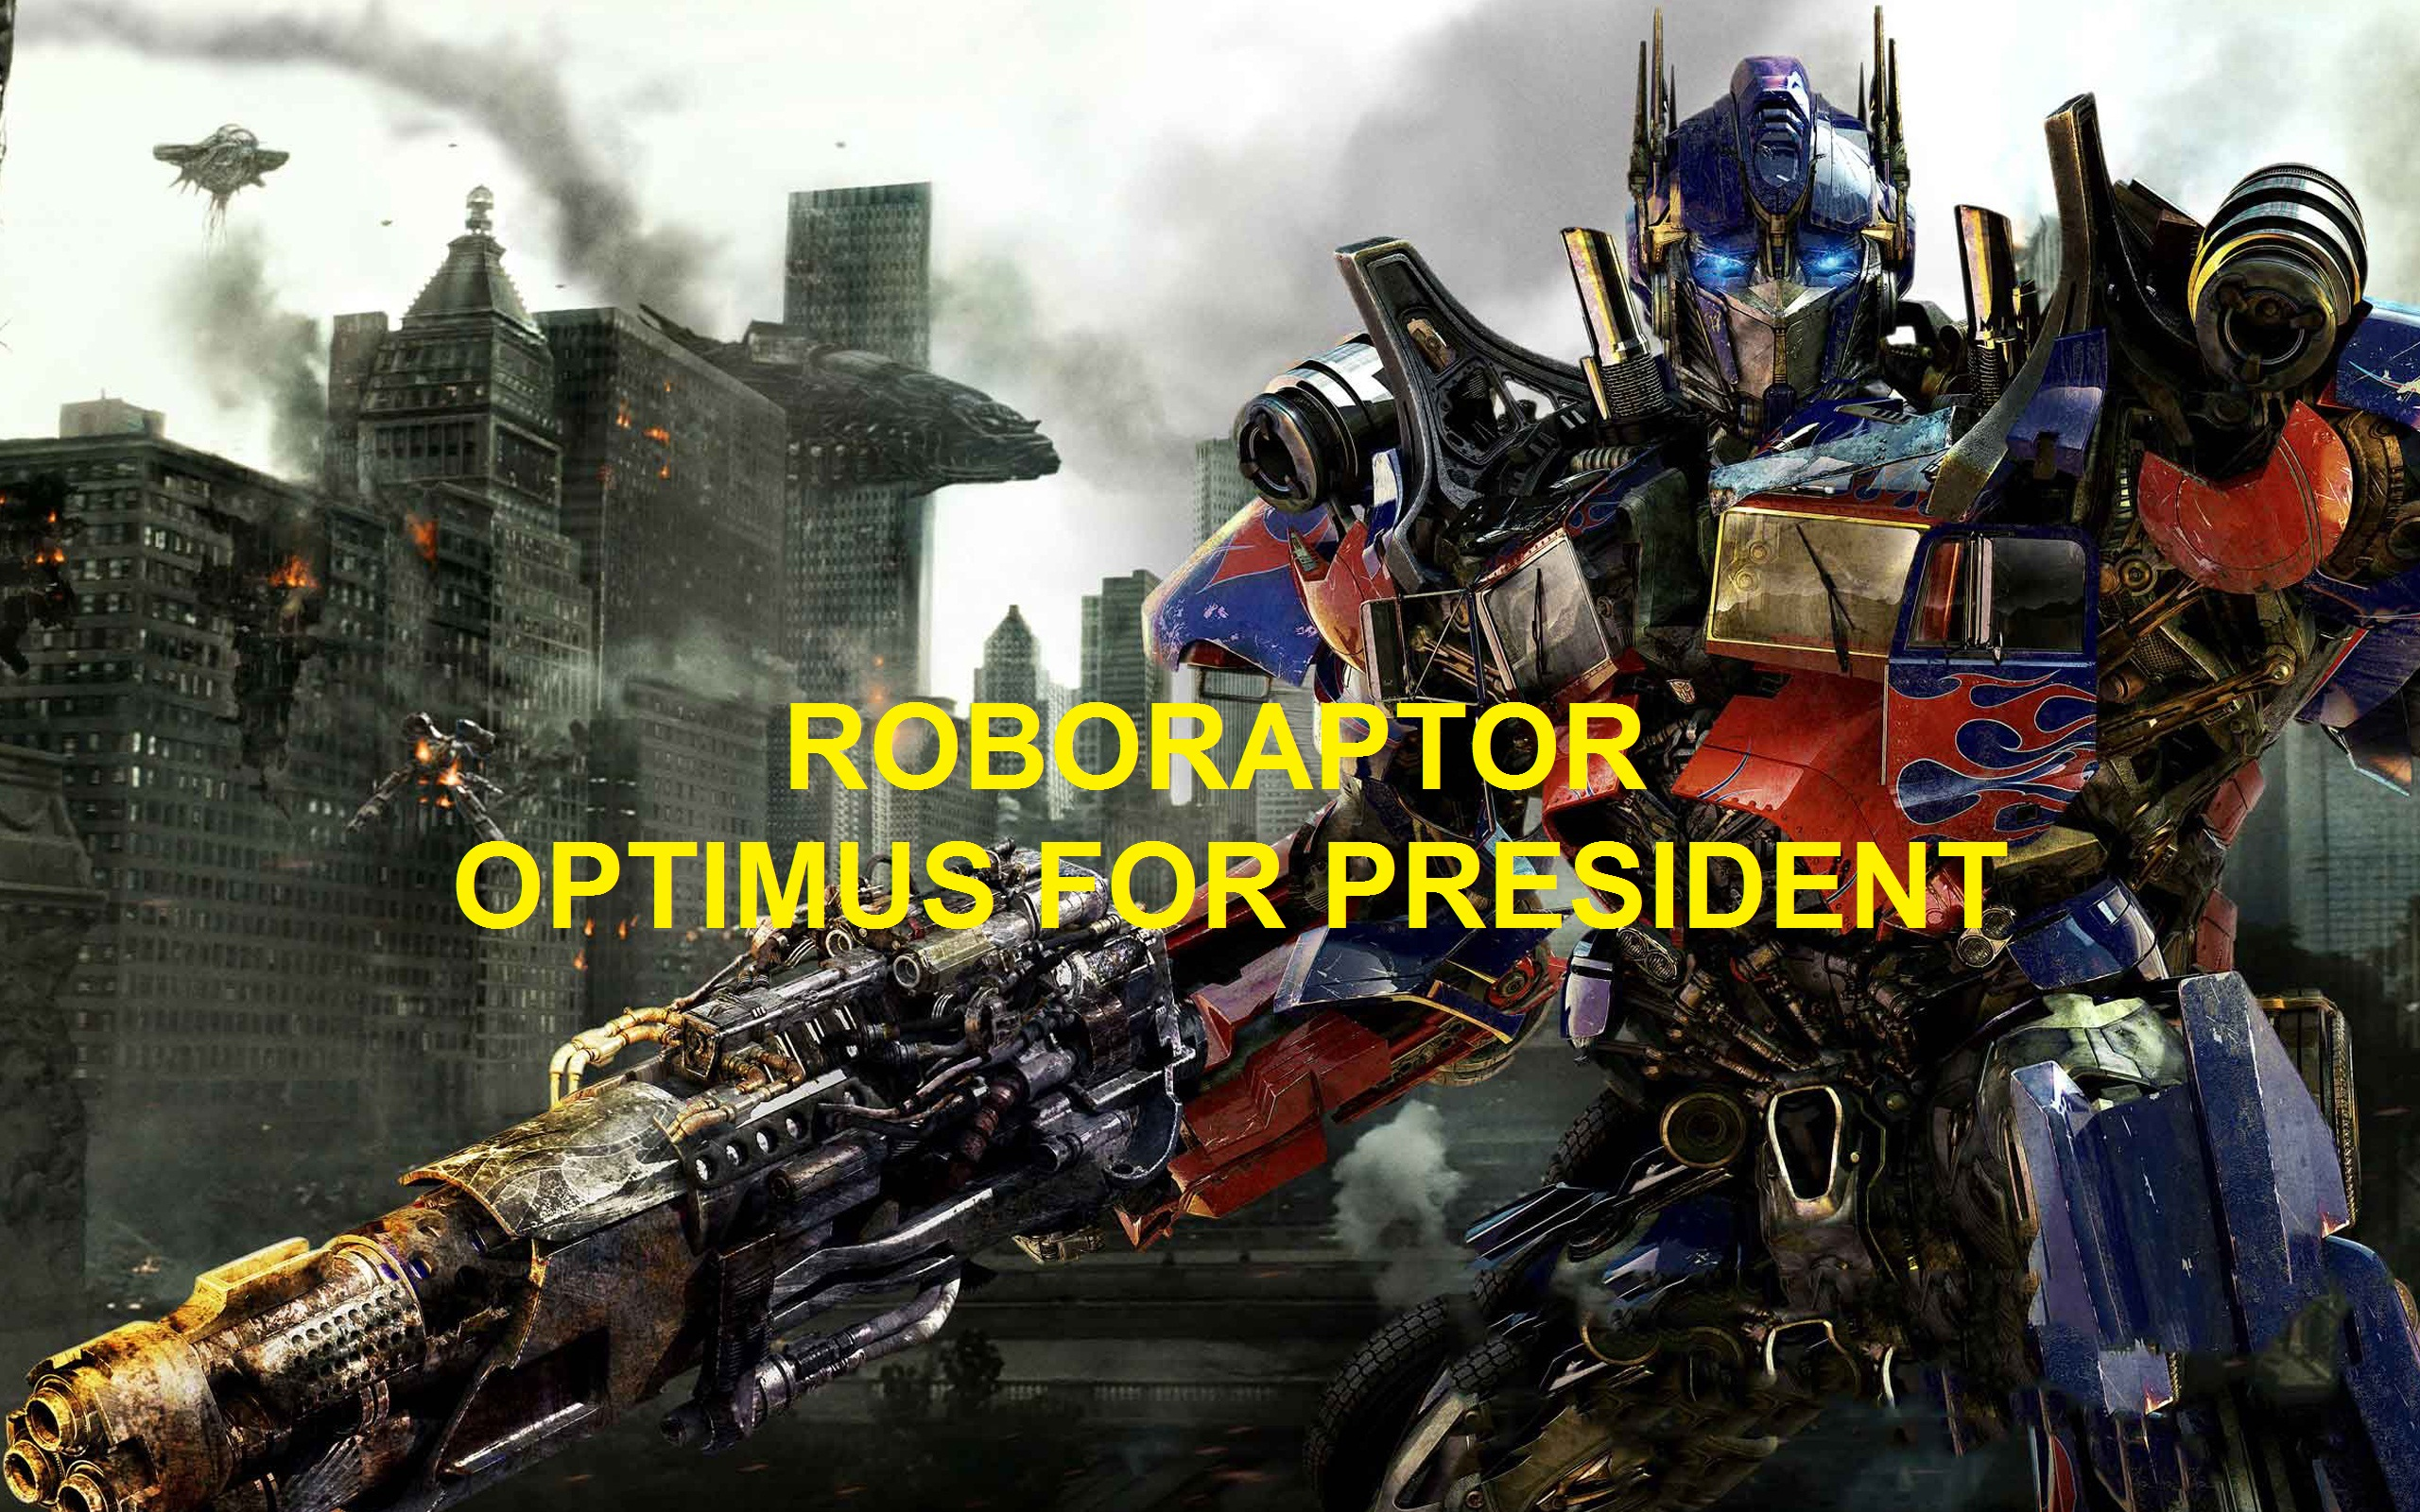 transformers_3_optimus_prime-wide.jpg